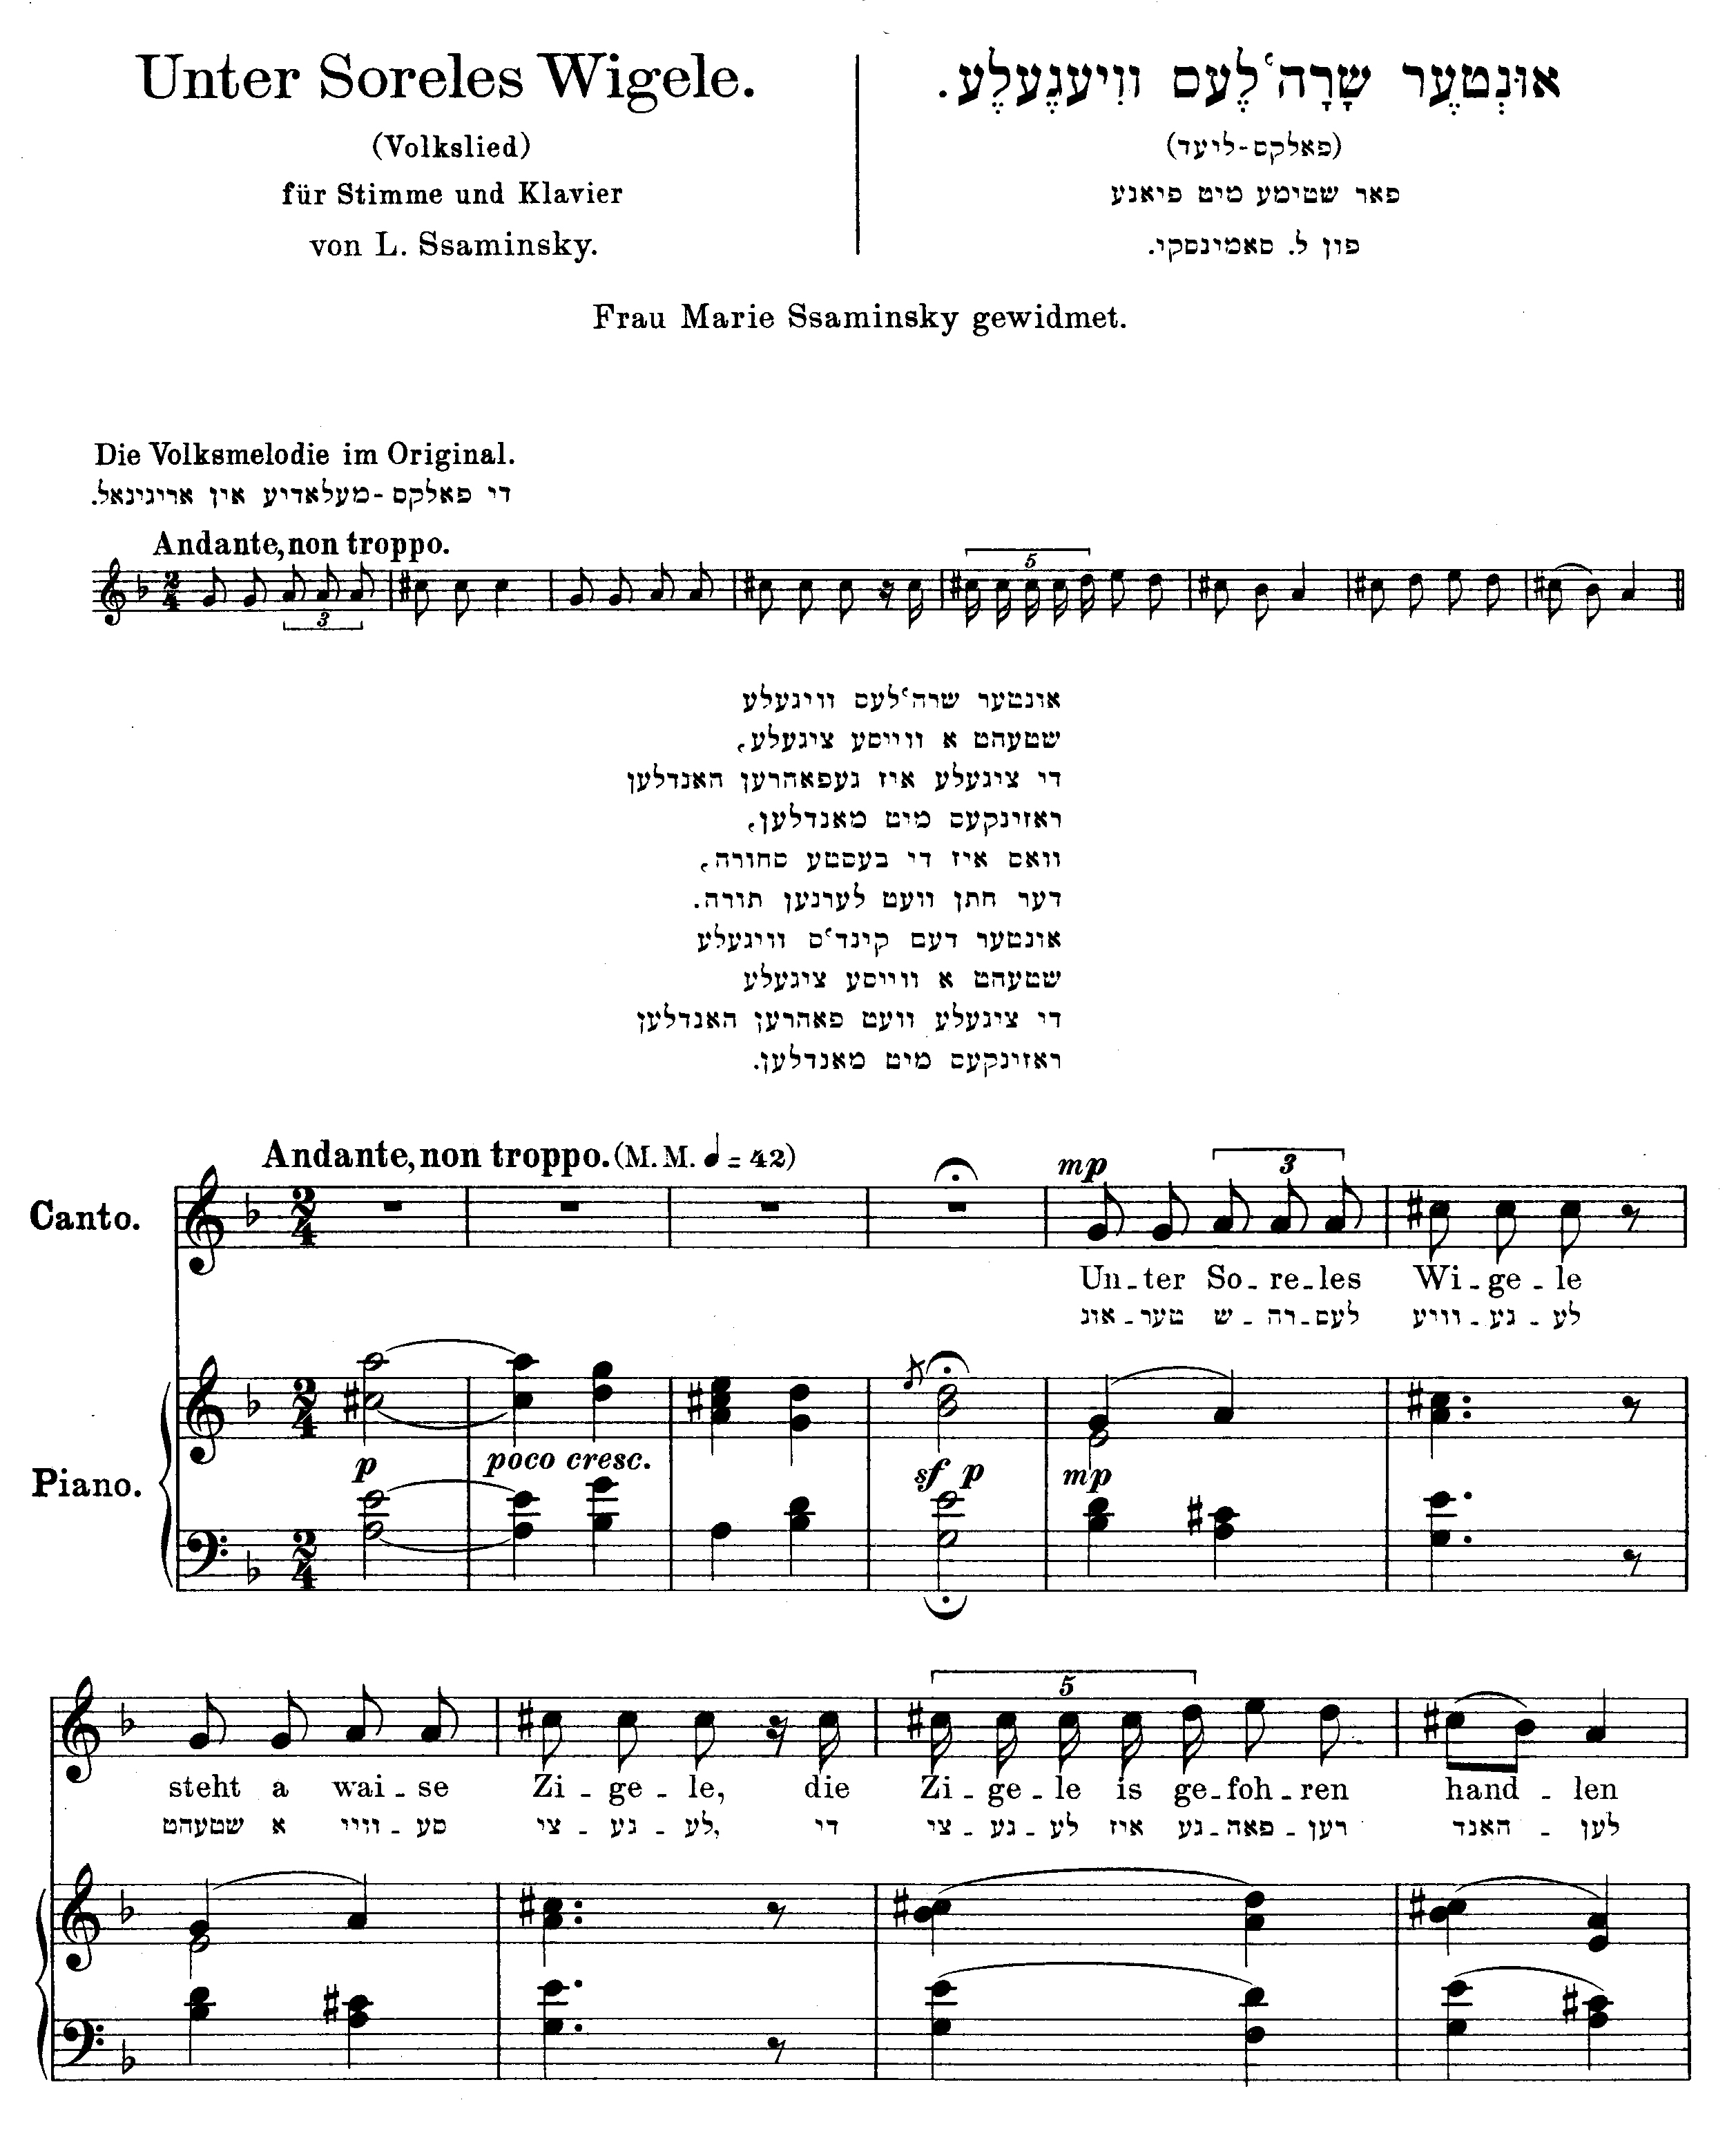 A page from the sheet music for Lazar Saminsky's song